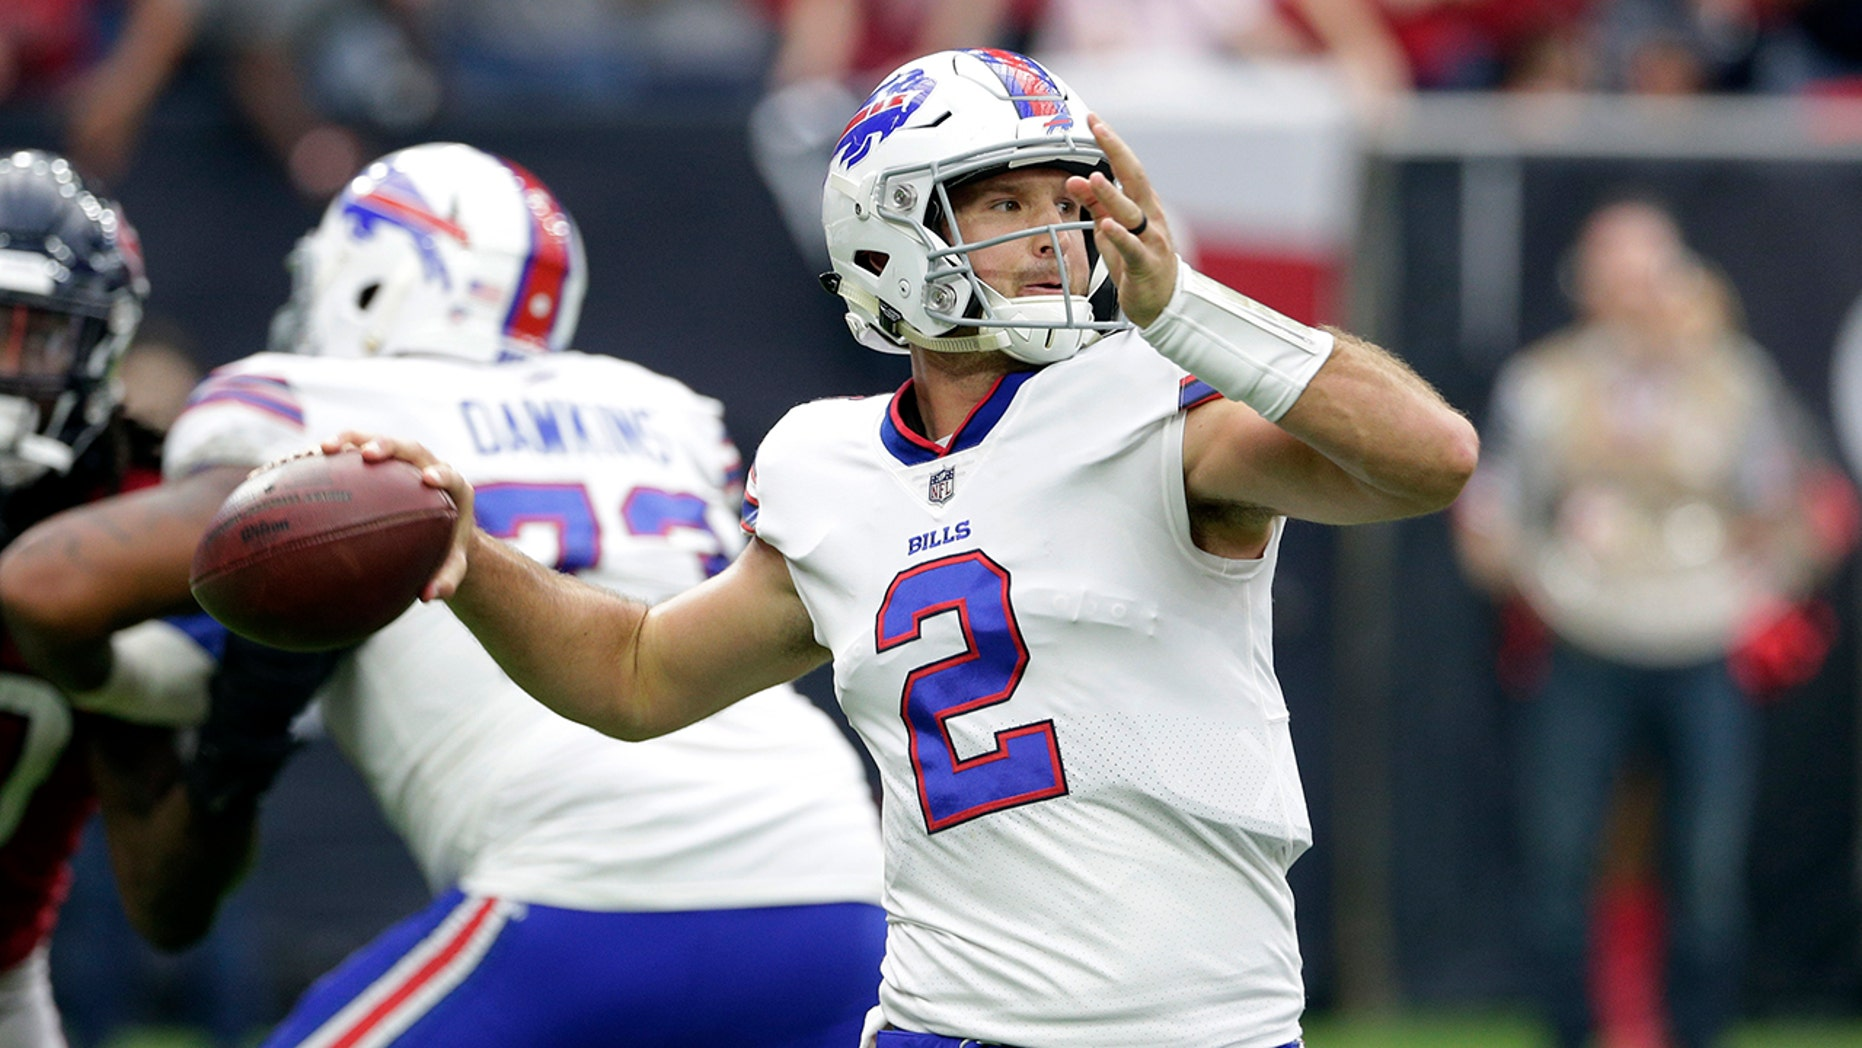 In this Oct. 14, 2018, record photo, Buffalo Bills quarterback Nathan Peterman throws a pass during an NFL game.